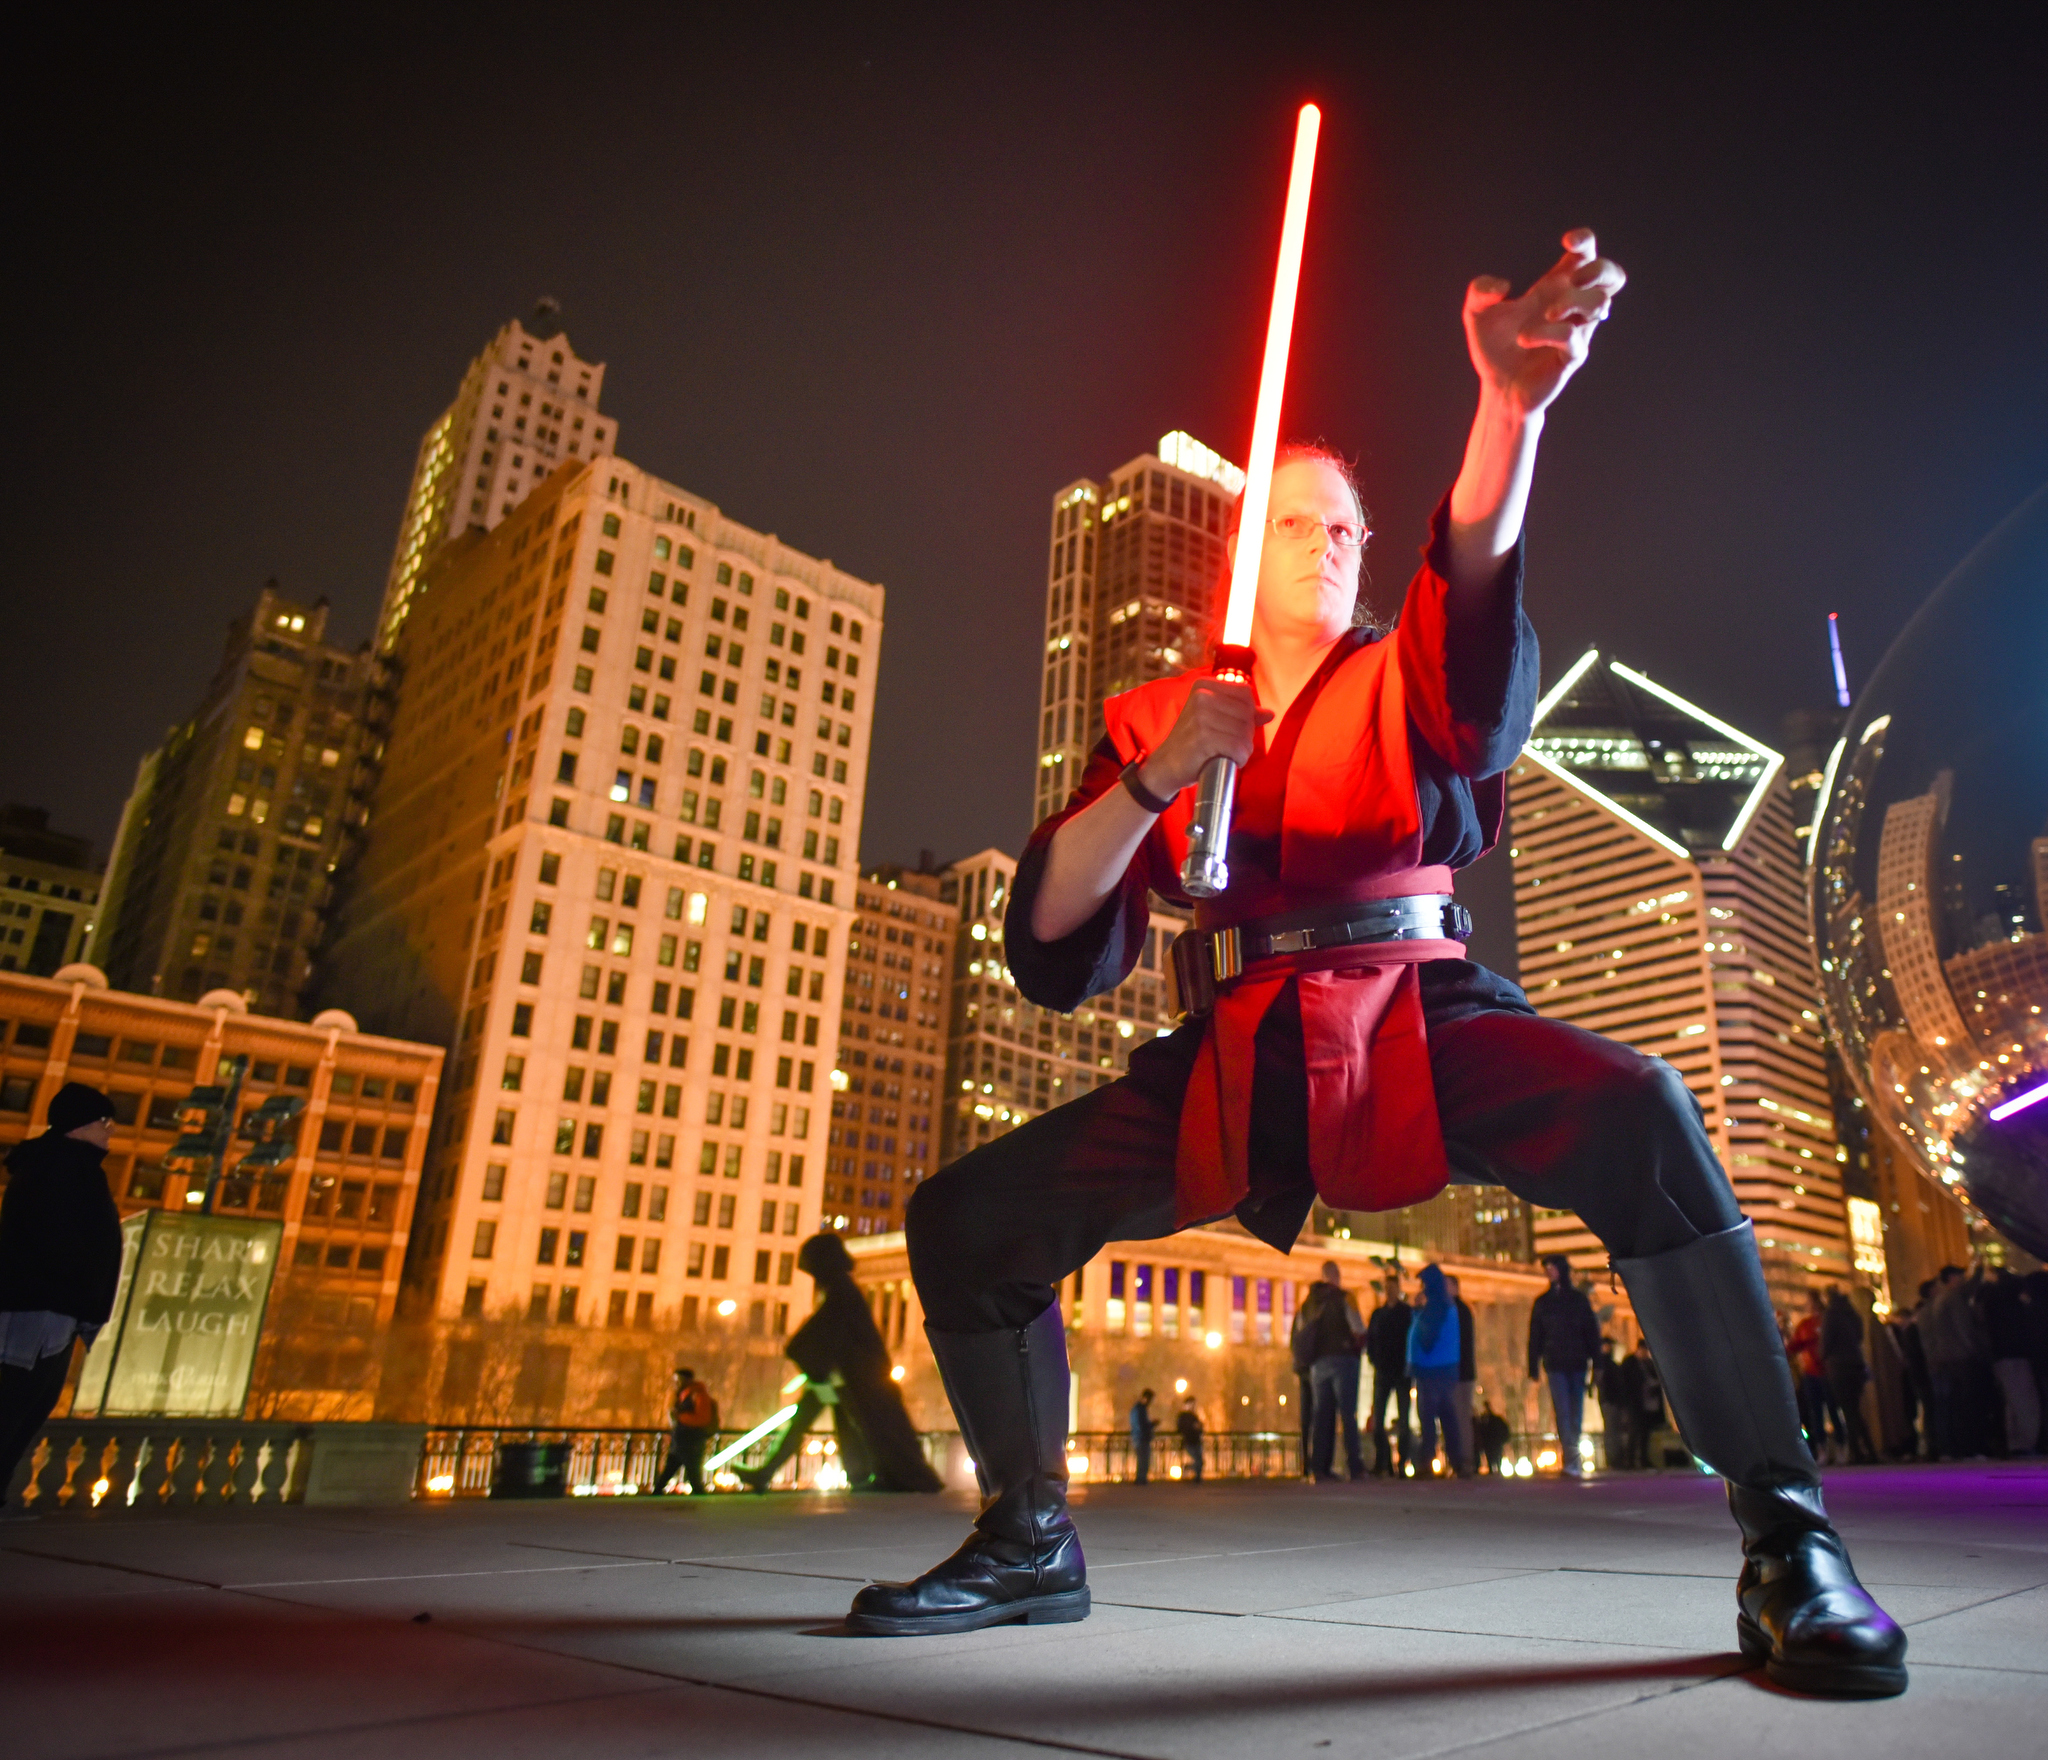 2019.04.14 - Star Wars Celebration Chicago 288866.JPG